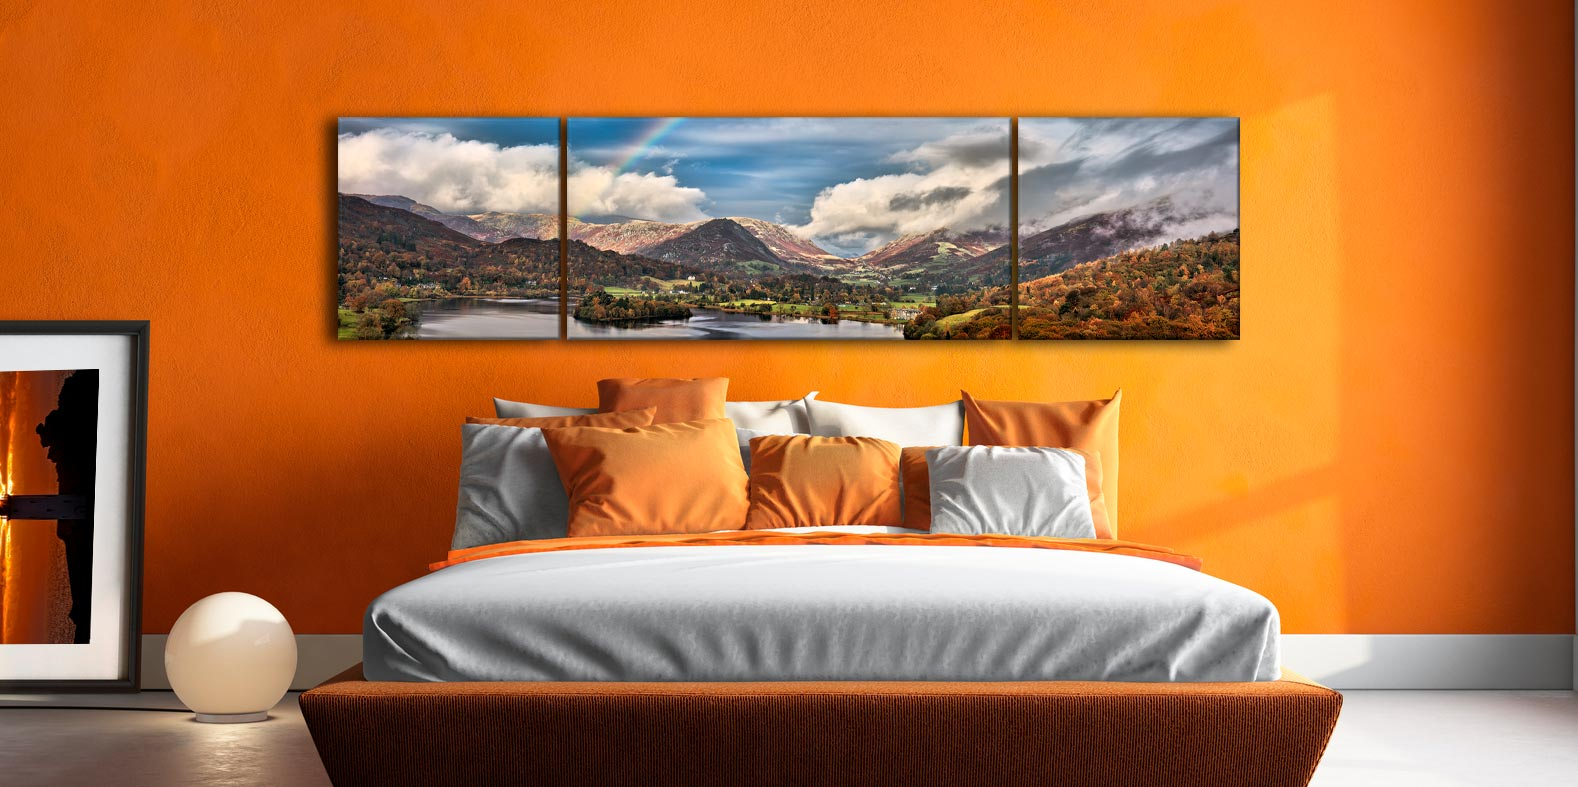 Grasmere Rainbow - 3 Panel Wide Centre Canvas on Wall